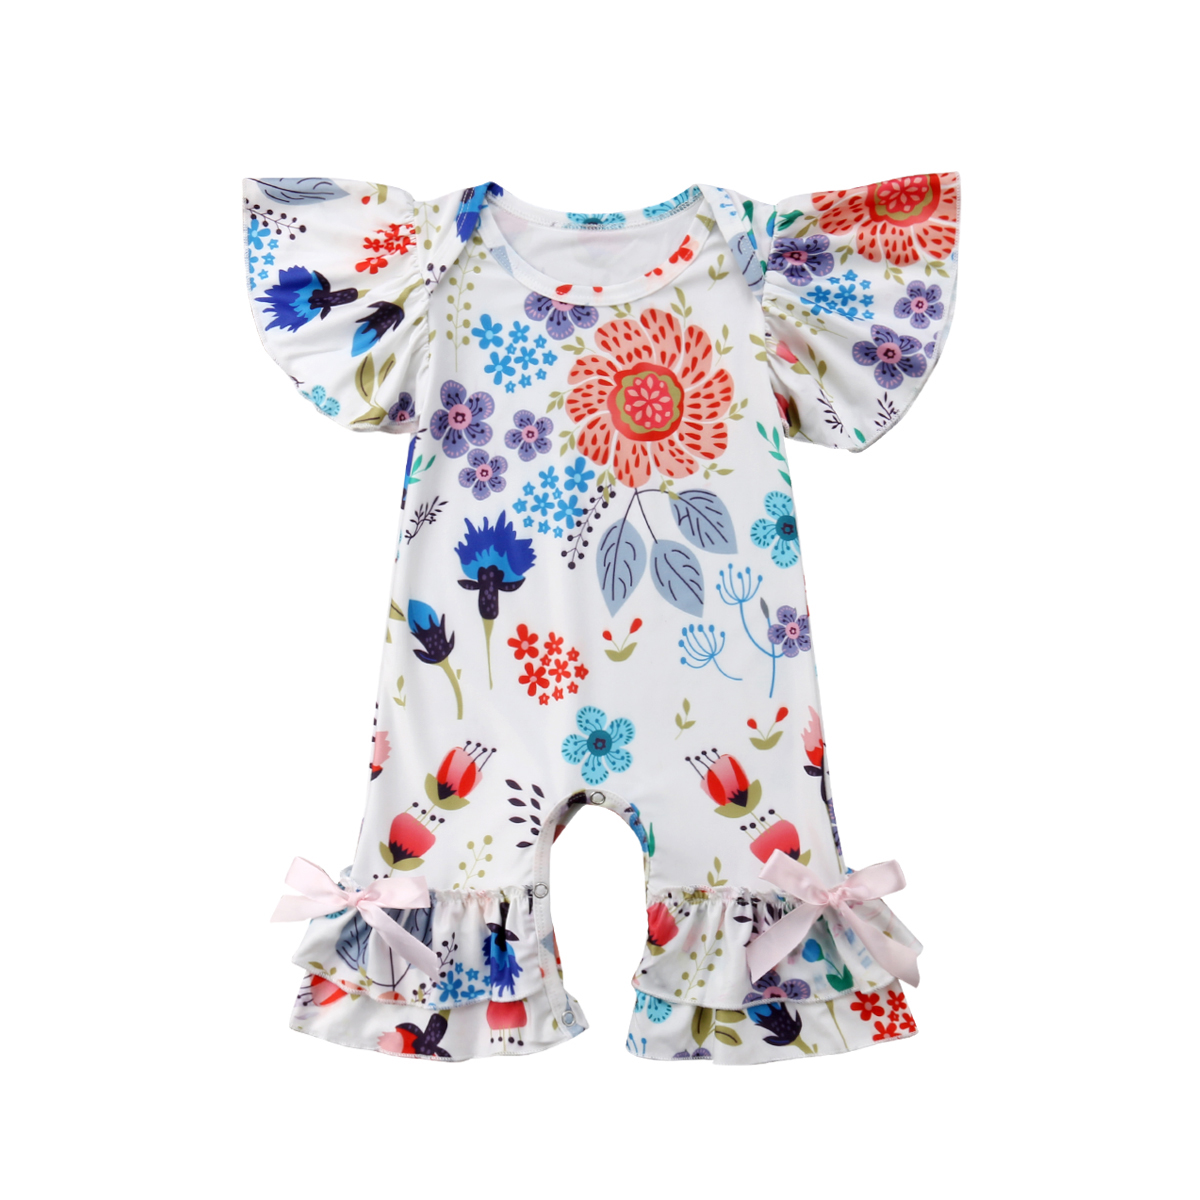 Cute Newborn Baby Girl Floral Romper Floral Jumpsuit Playsuit Cotton Clothes Outfit